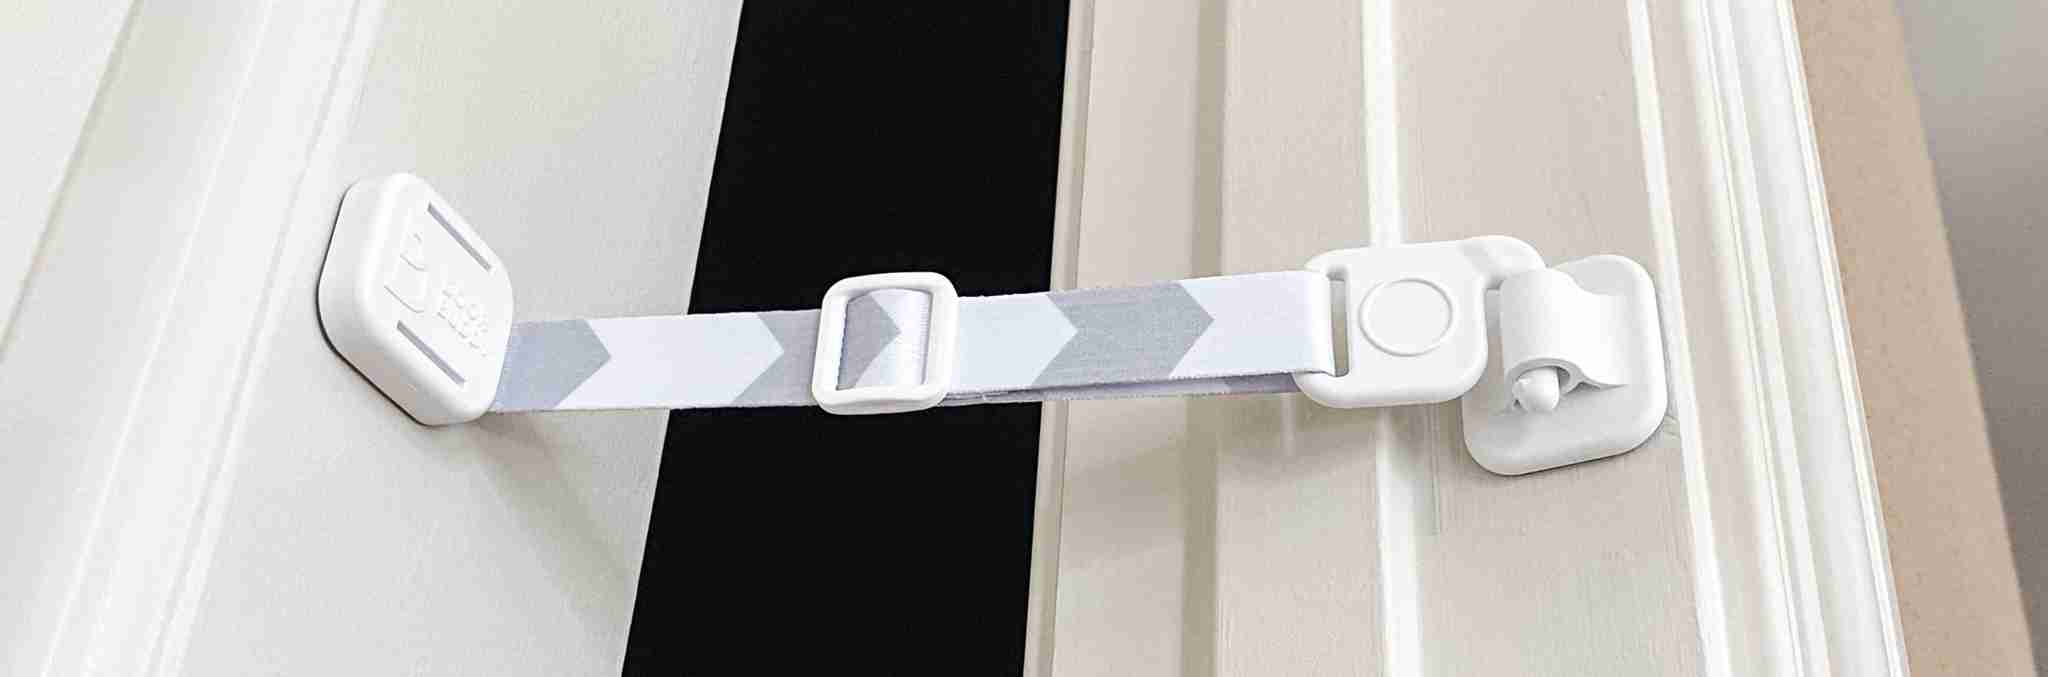 Door Buddy Dog Proof Door Latch